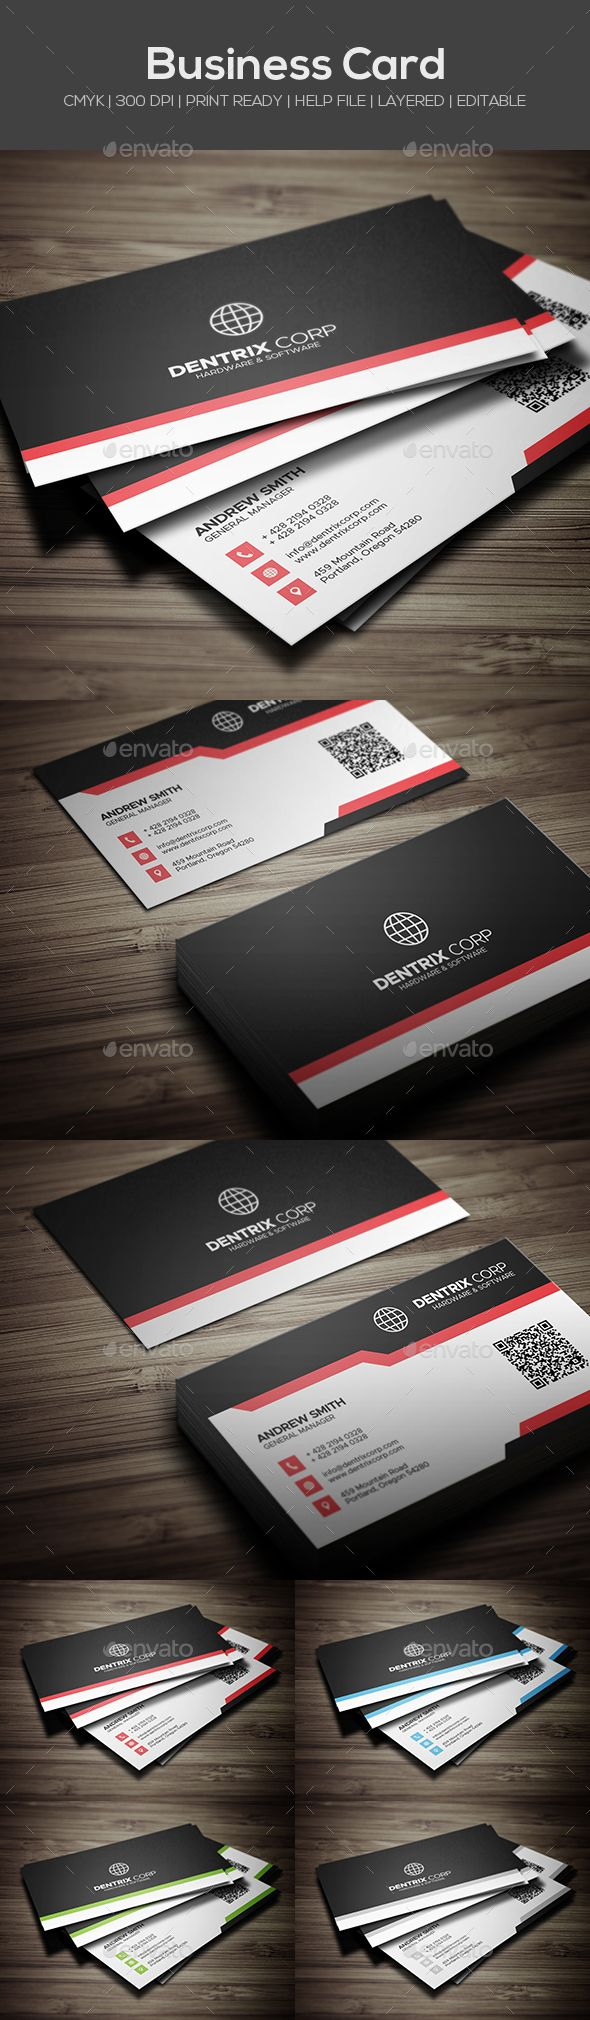 The 155 best tarjetas images on pinterest business cards business corporate business card colourmoves